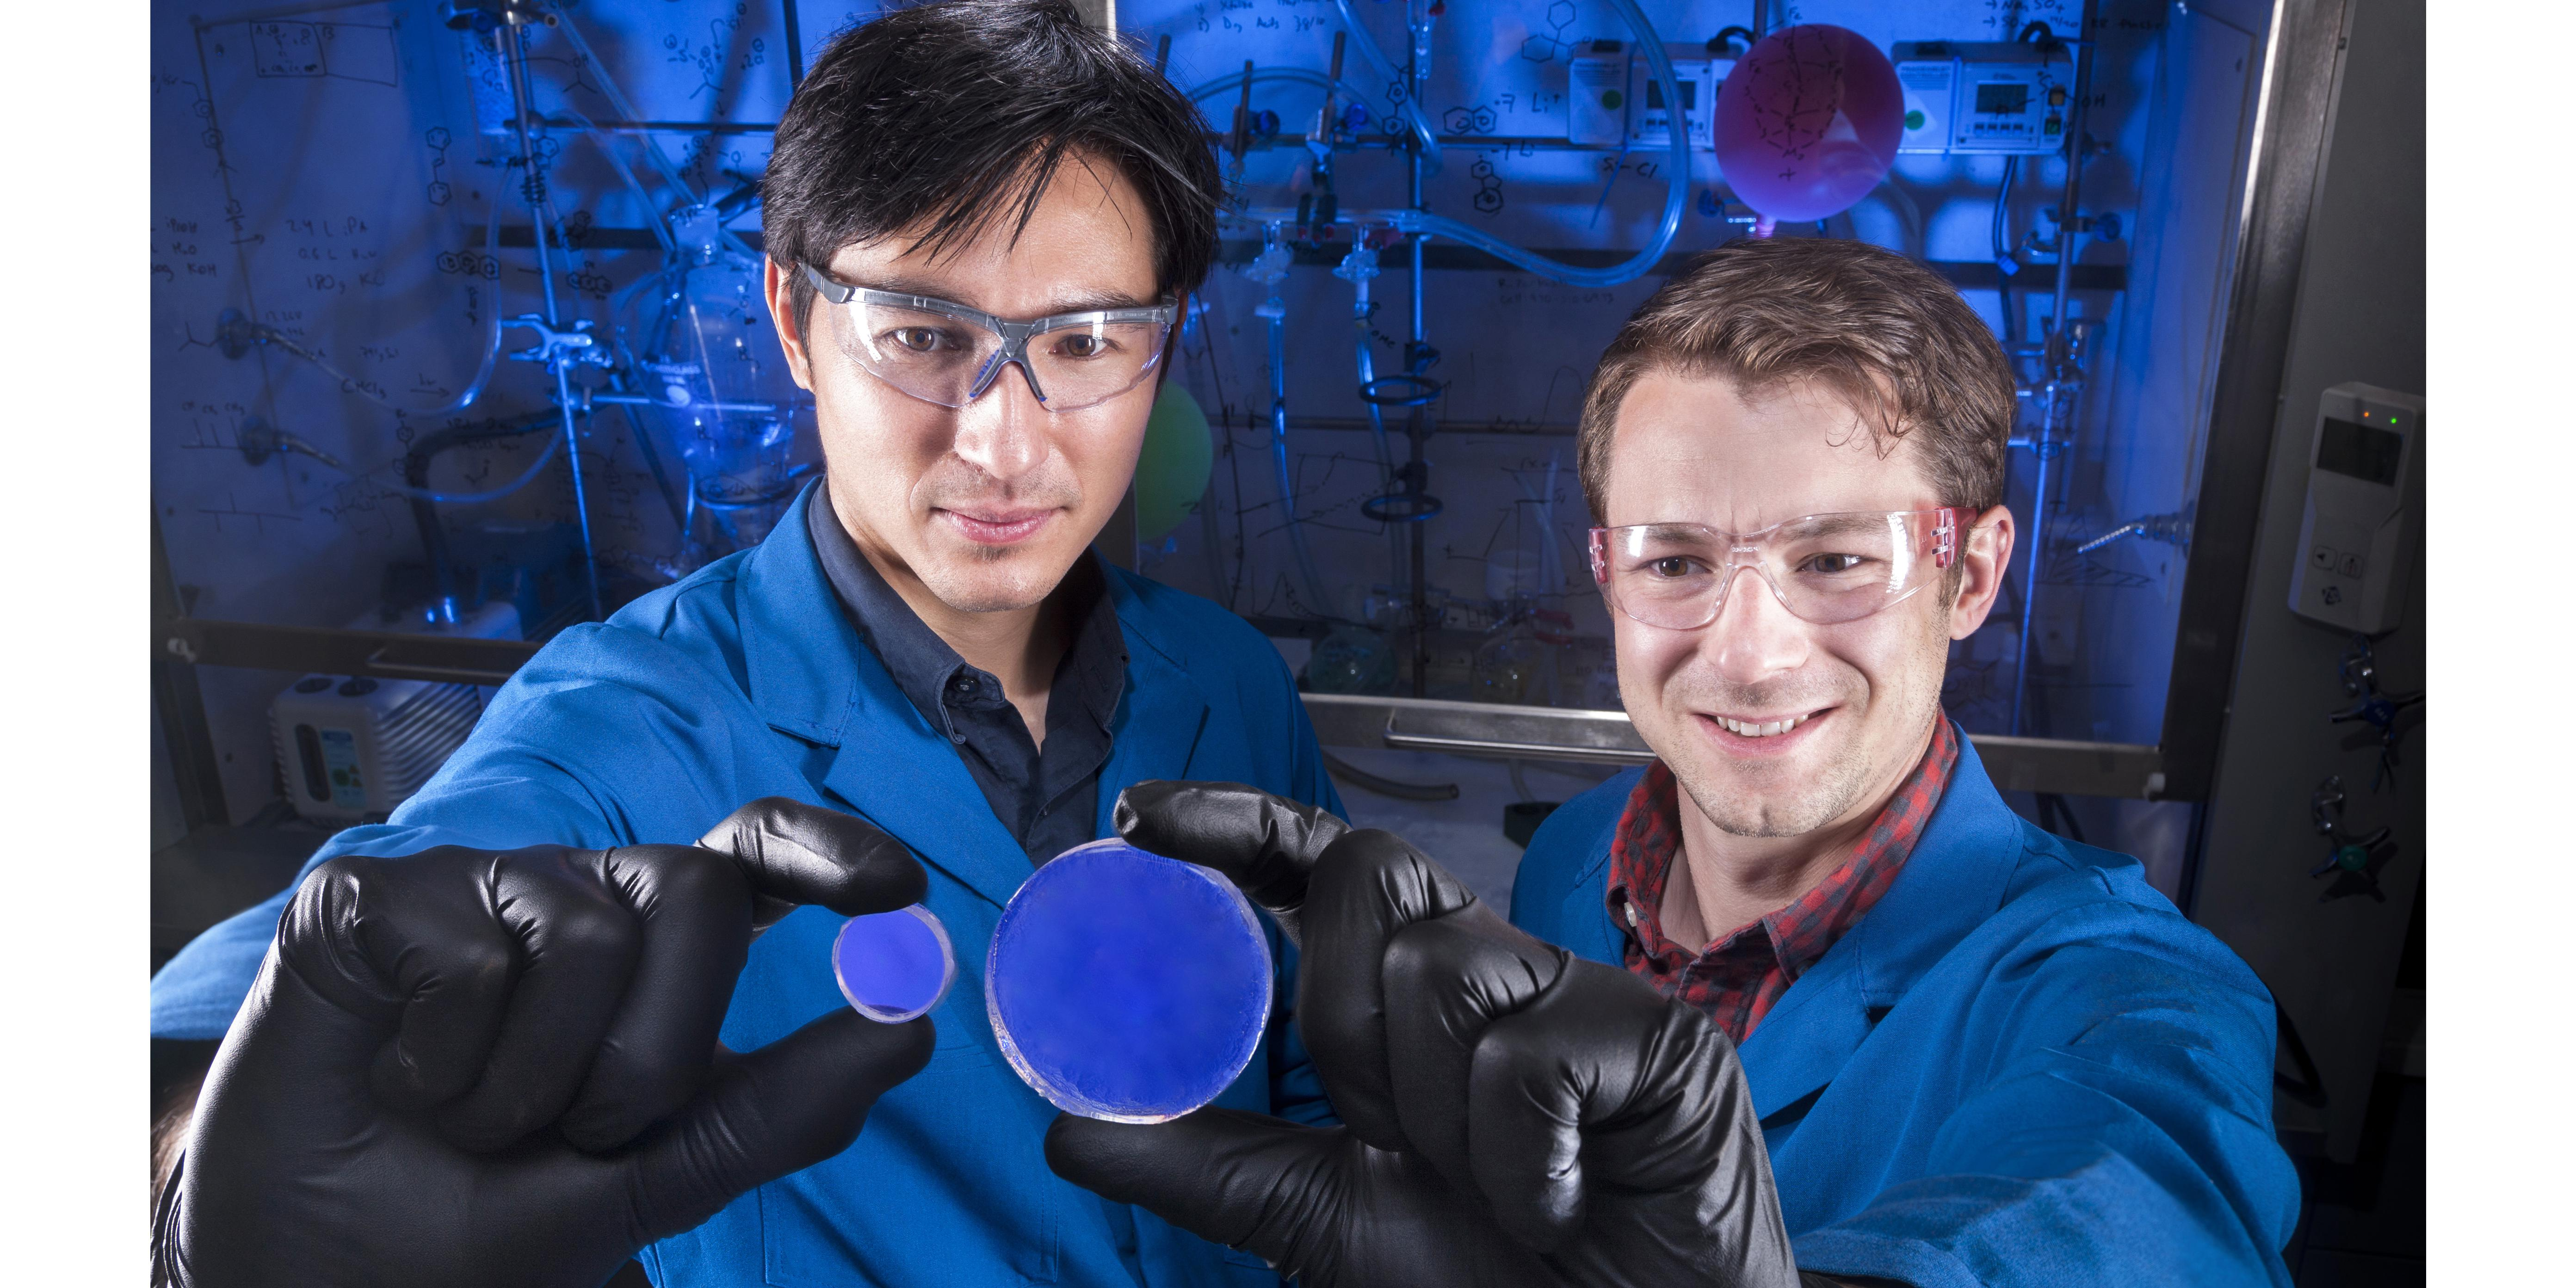 Sandia National Laboratories researcher Patrick Feng (l), holds a trans-stilbene scintillator and organic chemist Joey Carlson holds a scintillator made of organic glass.